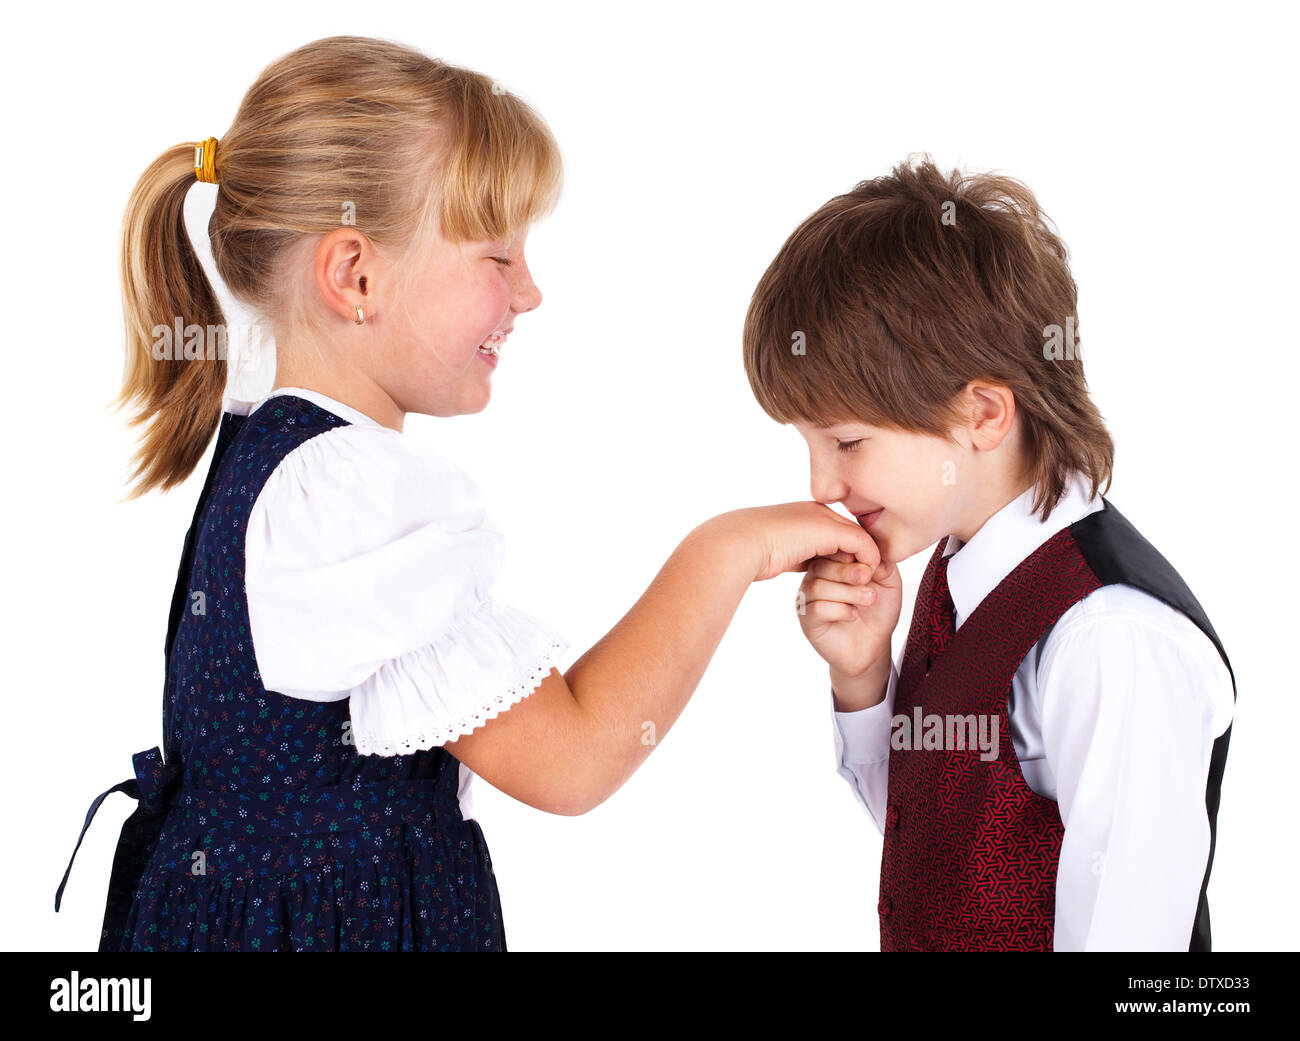 Little boy kissing hand stock photo 66963879 alamy little boy kissing hand altavistaventures Images